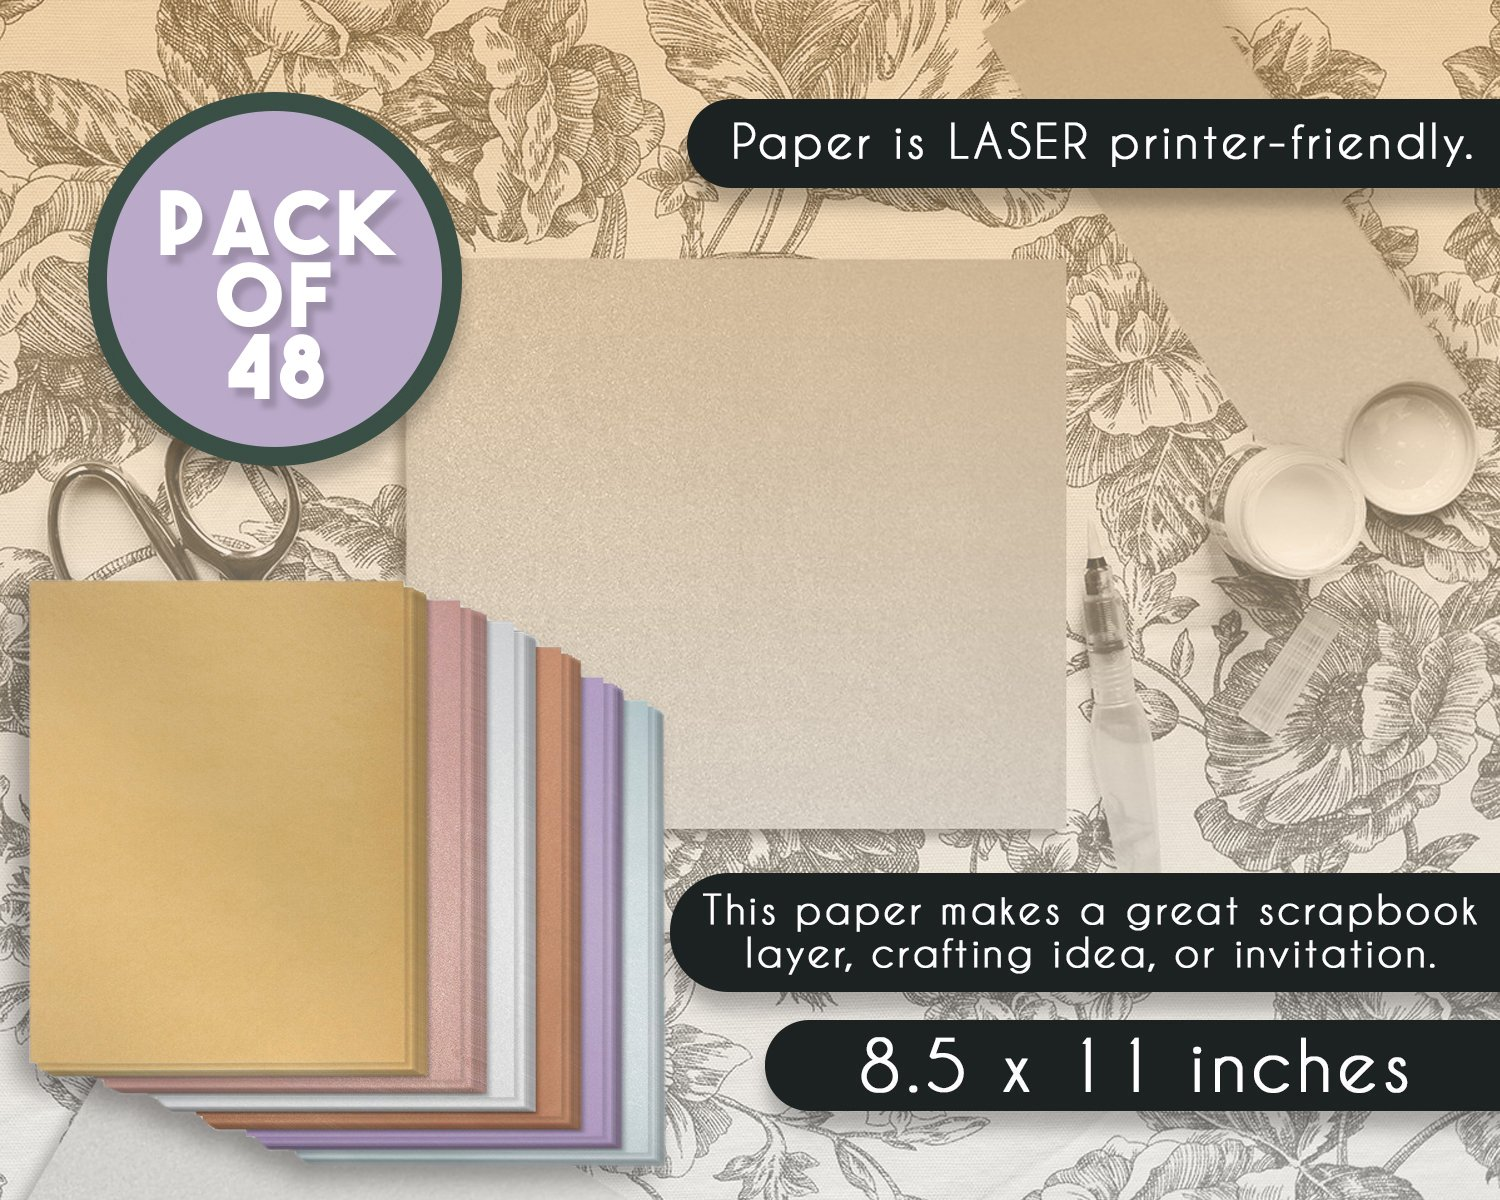 Baby Showers Double Sided 8.5 x 11 Inches Birthdays 96-Pack Shimmer Papers Dark Silver Metallic Paper Perfect for Weddings Craft Use Laser Printer Compatible